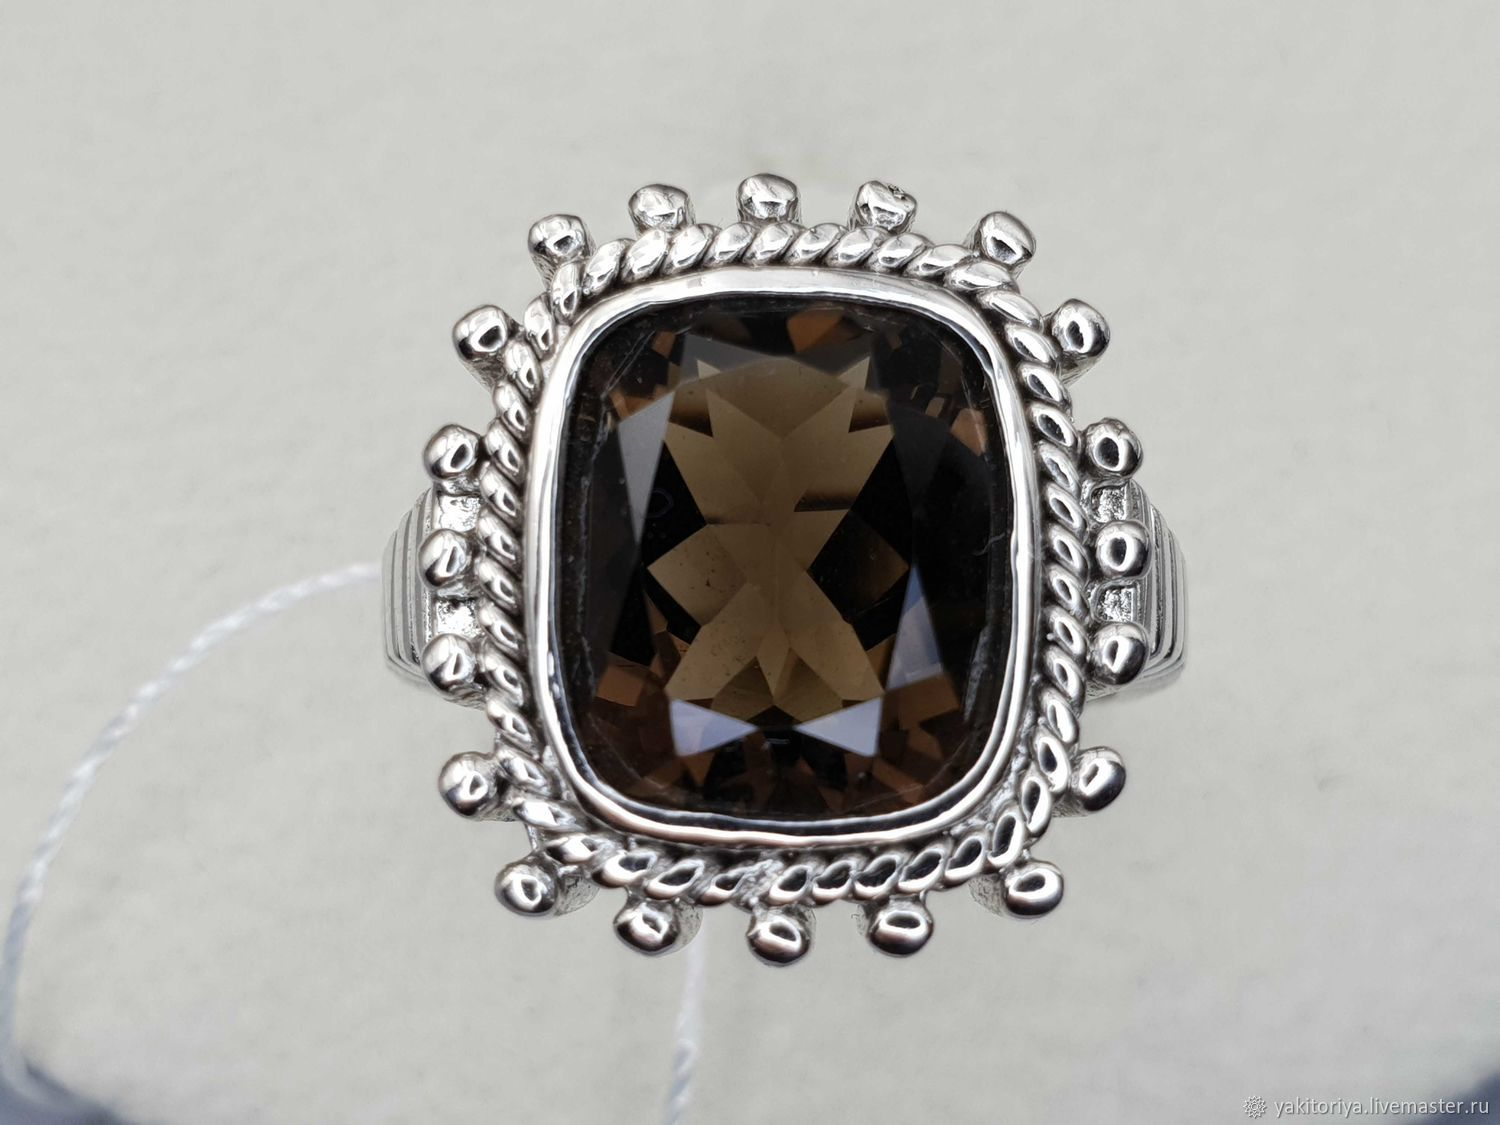 Silver ring with rauchtopaz 12h11 mm, Rings, Moscow,  Фото №1